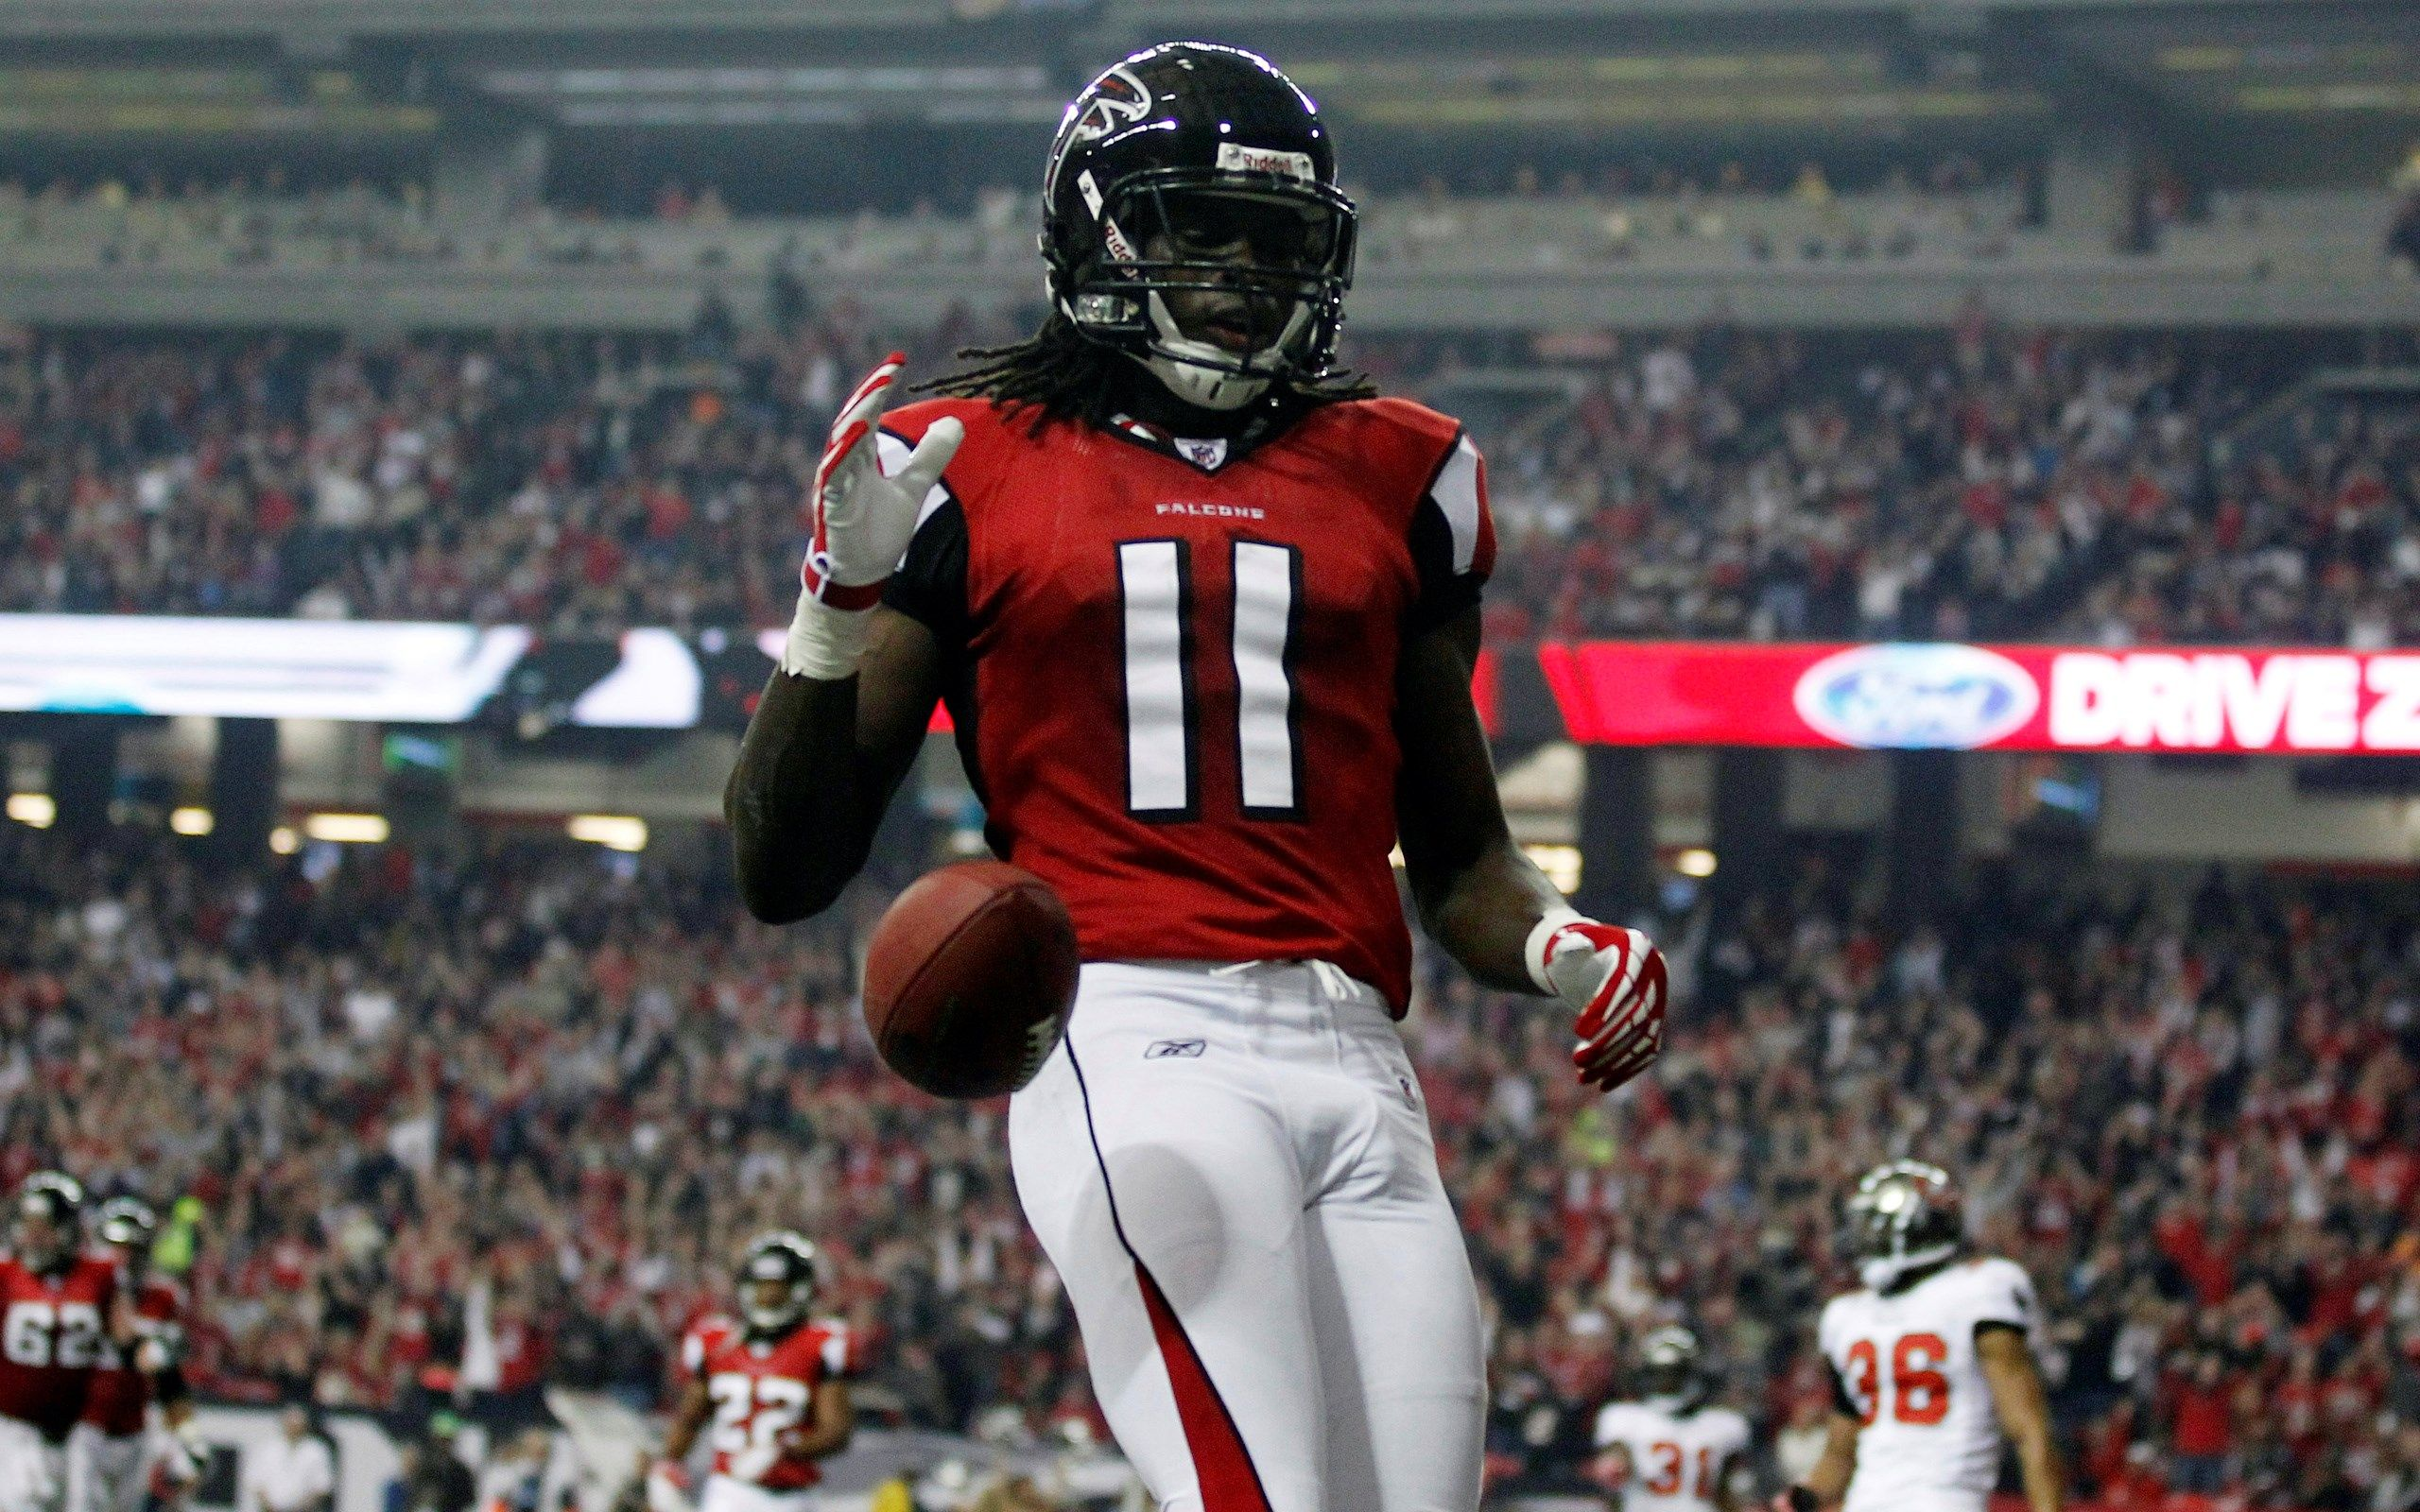 Free Wallpaper And Screensavers For Julio Jones Atlanta Falcons Wallpaper Julio Jones Atlanta Falcons Pictures